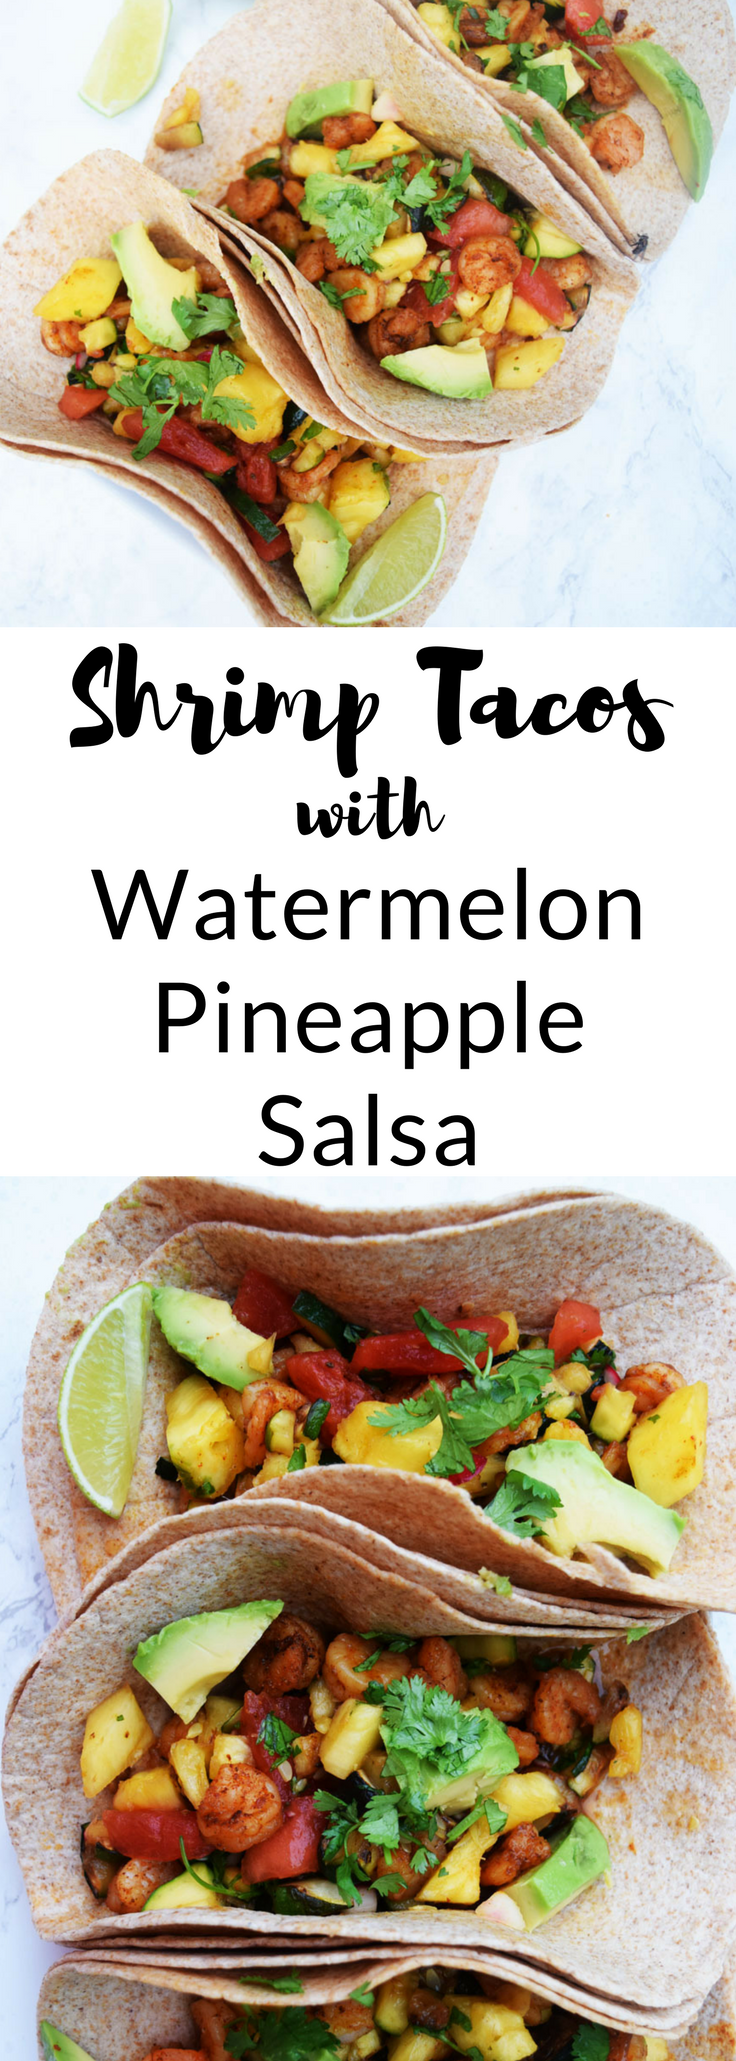 Looking for an easy, healthy dinner recipe? These Shrimp Tacos with Pineapple Salsa can be ready in under 30 minutes | Shrimp Tacos with Fruit Salsa